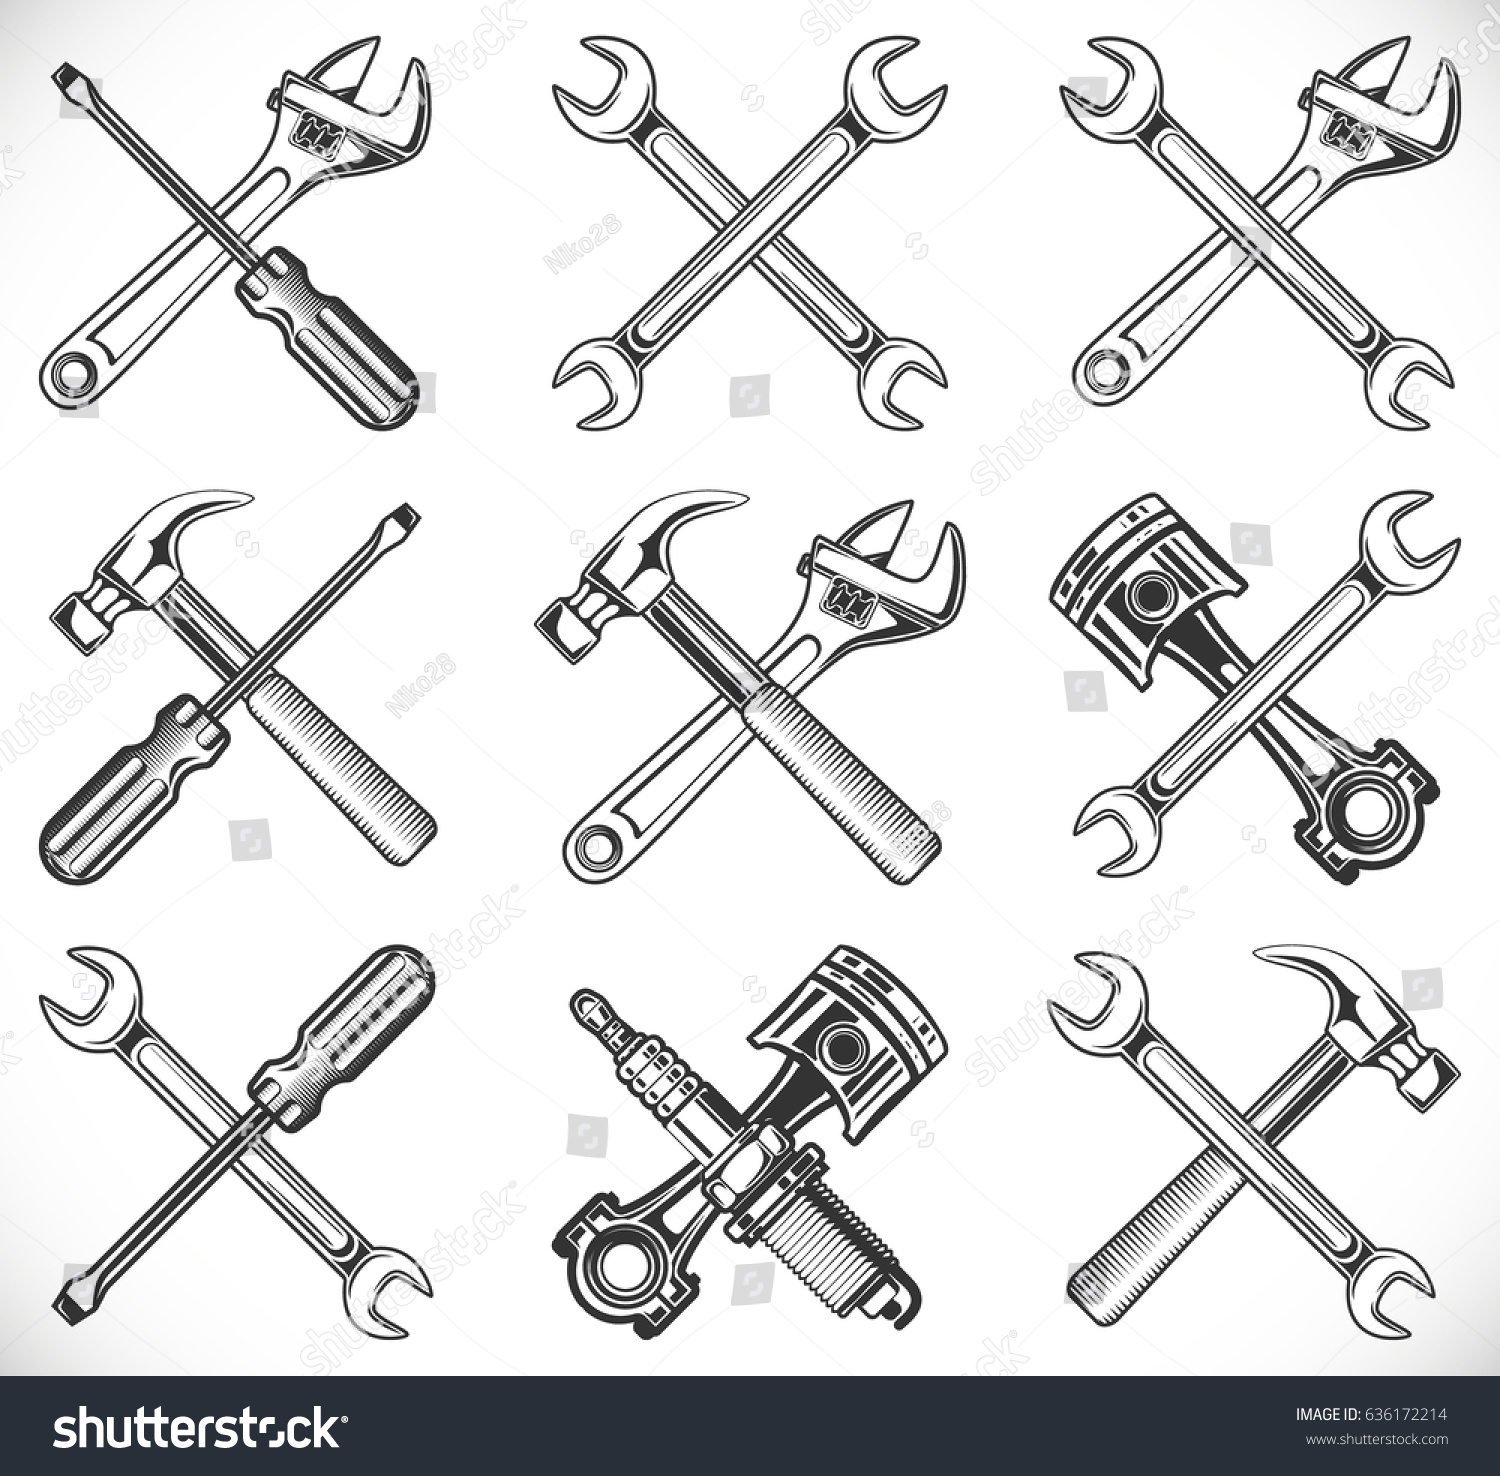 Wrench Piston Images, Stock Photos & Vectors | Shutterstock